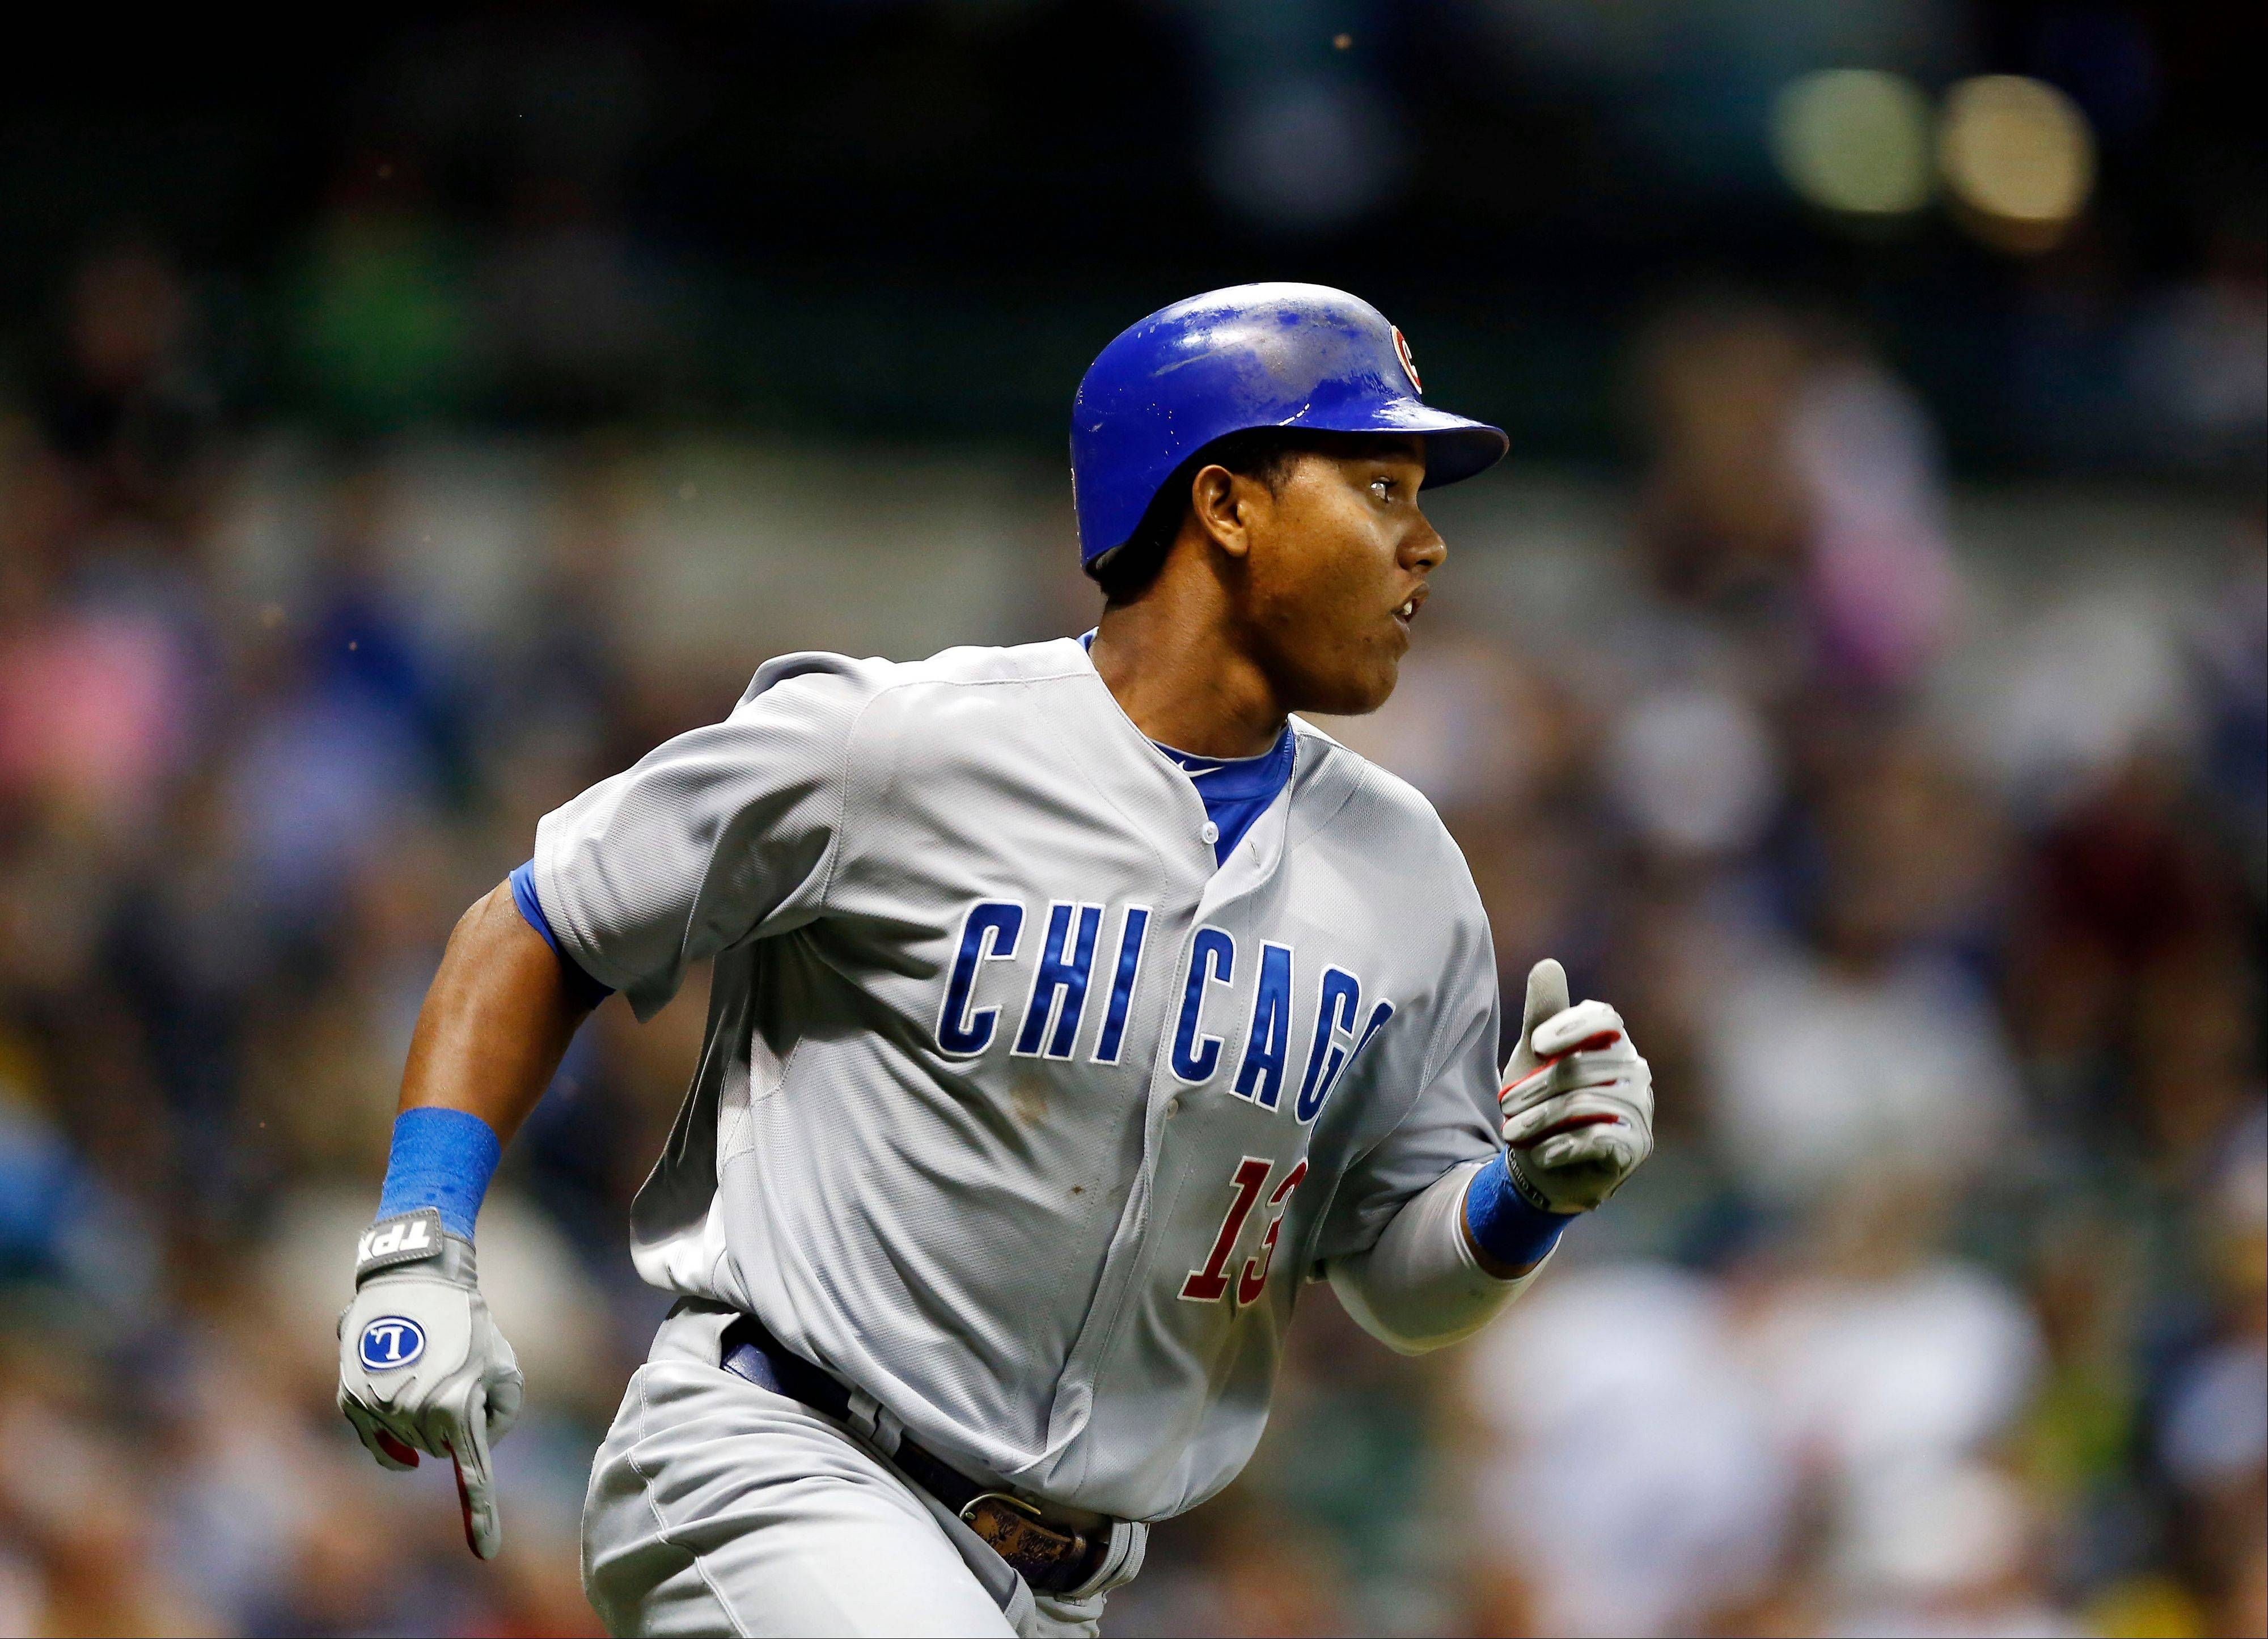 Castro plays for Cubs, but it was 'last straw'